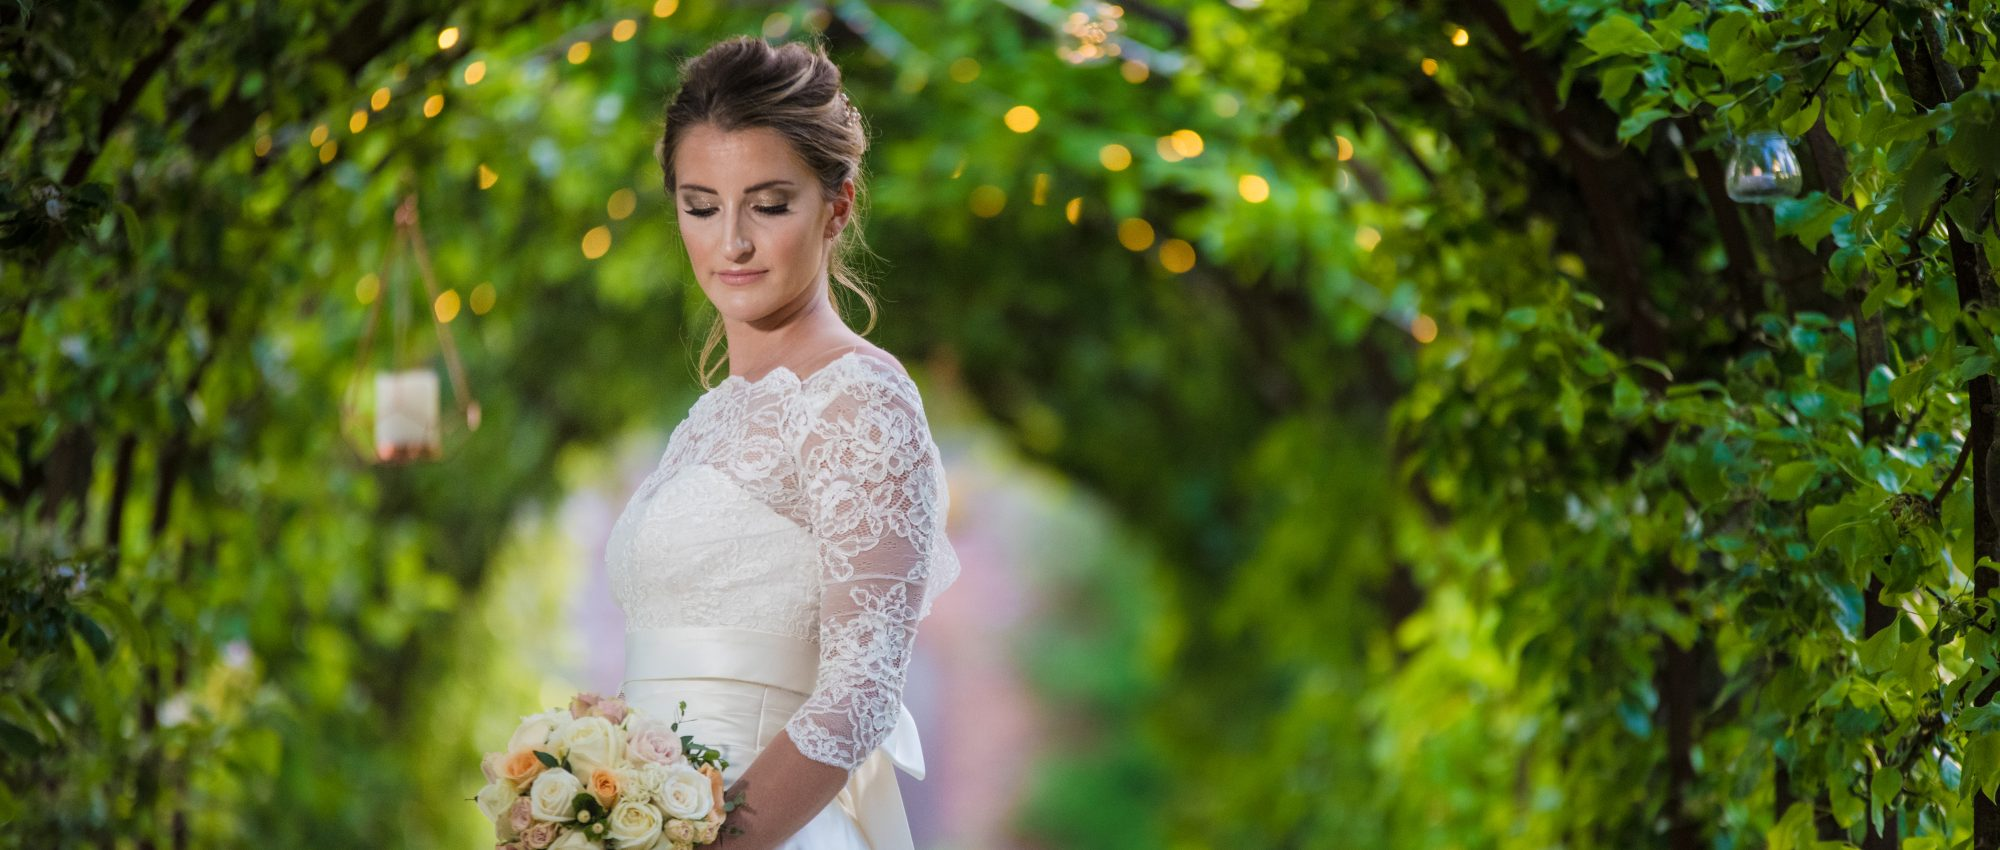 Bride shot in Walled Garden